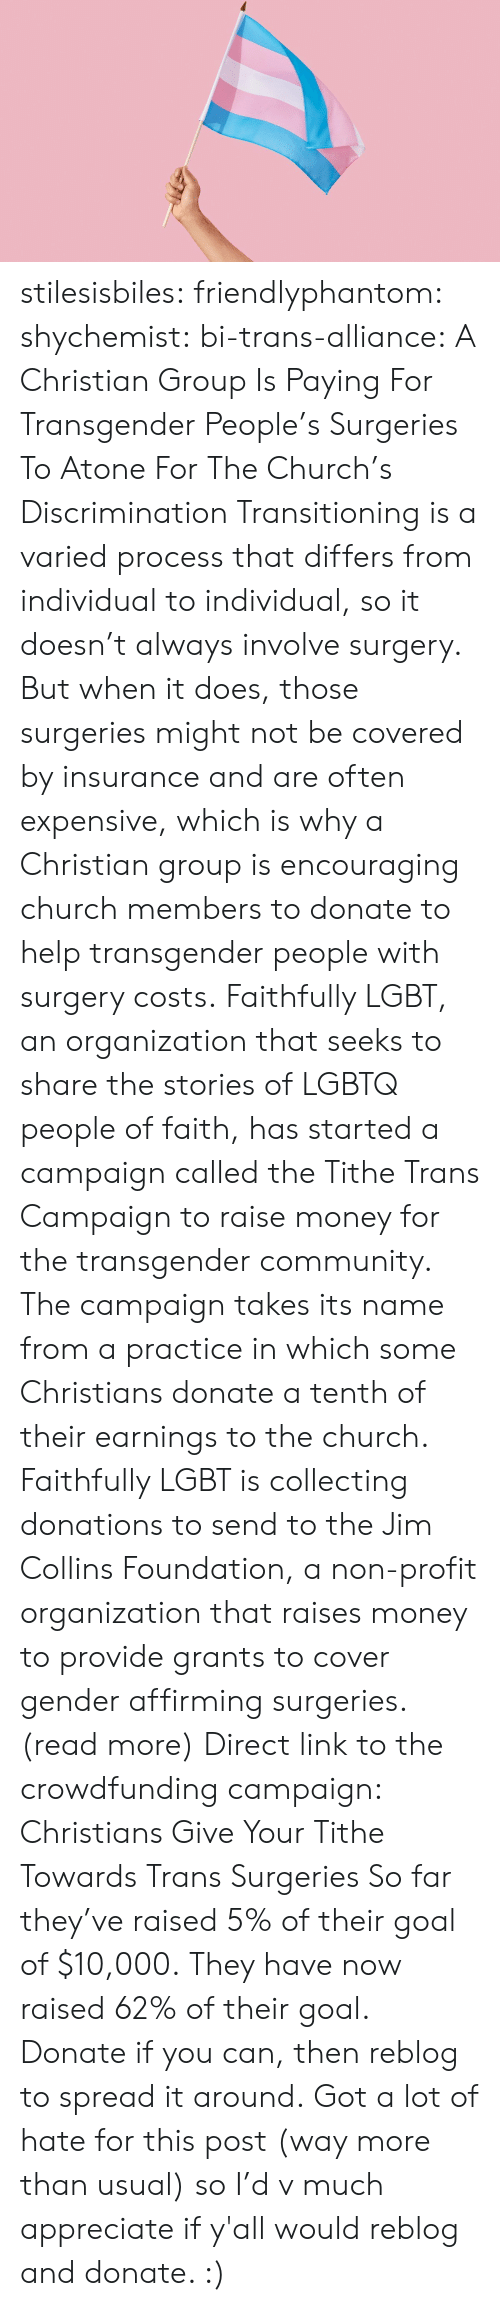 Church, Community, and Lgbt: stilesisbiles:  friendlyphantom: shychemist:  bi-trans-alliance:    A Christian Group Is Paying For Transgender People's Surgeries To Atone For The Church's Discrimination      Transitioning is a varied process that differs from individual to individual, so it doesn't always involve surgery. But when it does, those surgeries might not be covered by insurance and are often expensive, which is why a Christian group is encouraging church members to donate to help transgender people with surgery costs. Faithfully LGBT, an organization that seeks to share the stories of LGBTQ people of faith, has started a campaign called the Tithe Trans Campaign to raise money for the transgender community. The campaign takes its name from a practice in which some Christians donate a tenth of their earnings to the church. Faithfully LGBT is collecting donations to send to the Jim Collins Foundation, a non-profit organization that raises money to provide grants to cover gender affirming surgeries.   (read more)   Direct link to the crowdfunding campaign: Christians Give Your Tithe Towards Trans Surgeries So far they've raised 5% of their goal of $10,000.  They have now raised 62% of their goal. Donate if you can, then reblog to spread it around. Got a lot of hate for this post (way more than usual) so I'd v much appreciate if y'all would reblog and donate. :)